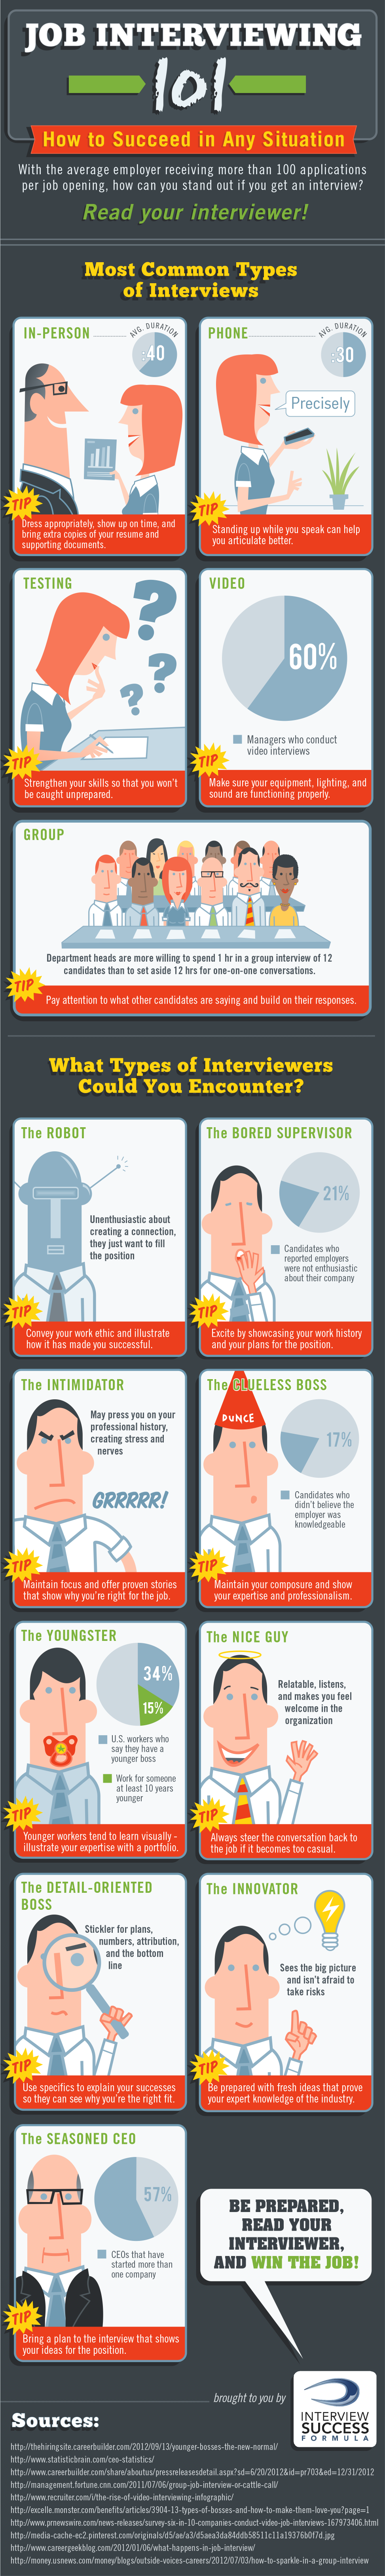 http-%2F%2Fmashable.com%2Fwp-content%2Fuploads%2F2013%2F03%2FJob-Interviewing-Infographic